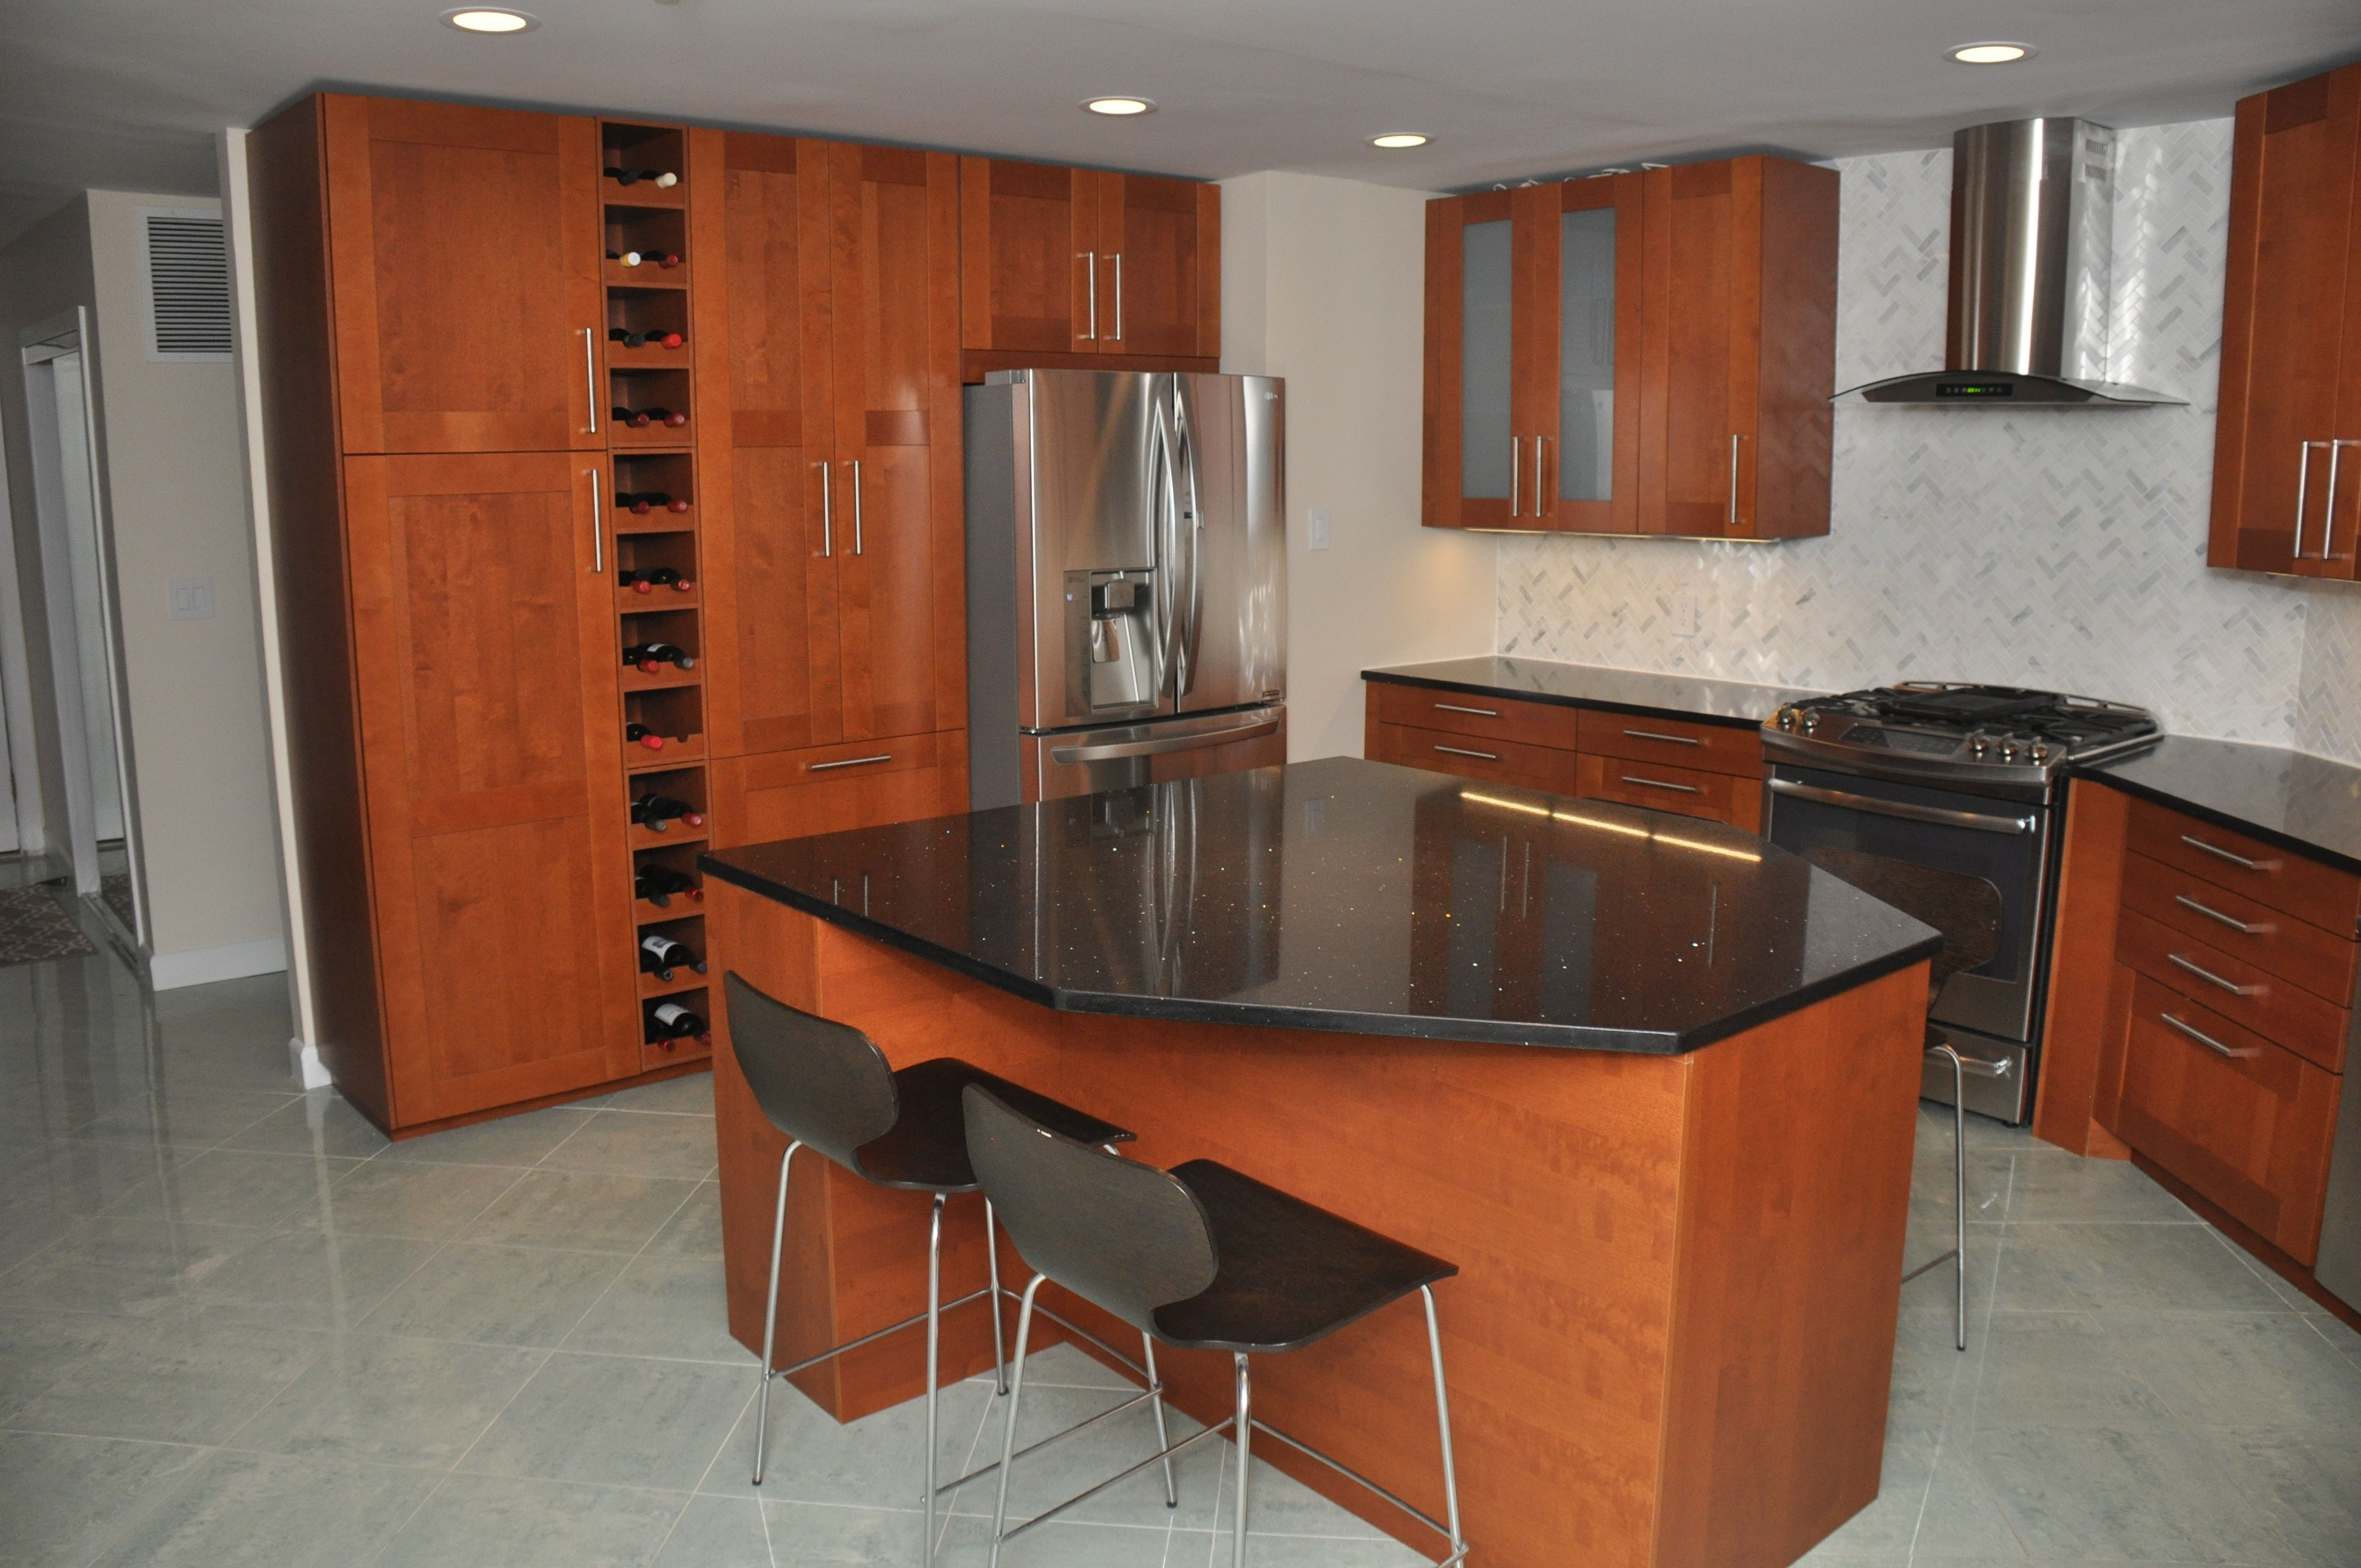 Best This Ikea Kitchen Has Grimslöv Doors In Medium Brown We 640 x 480